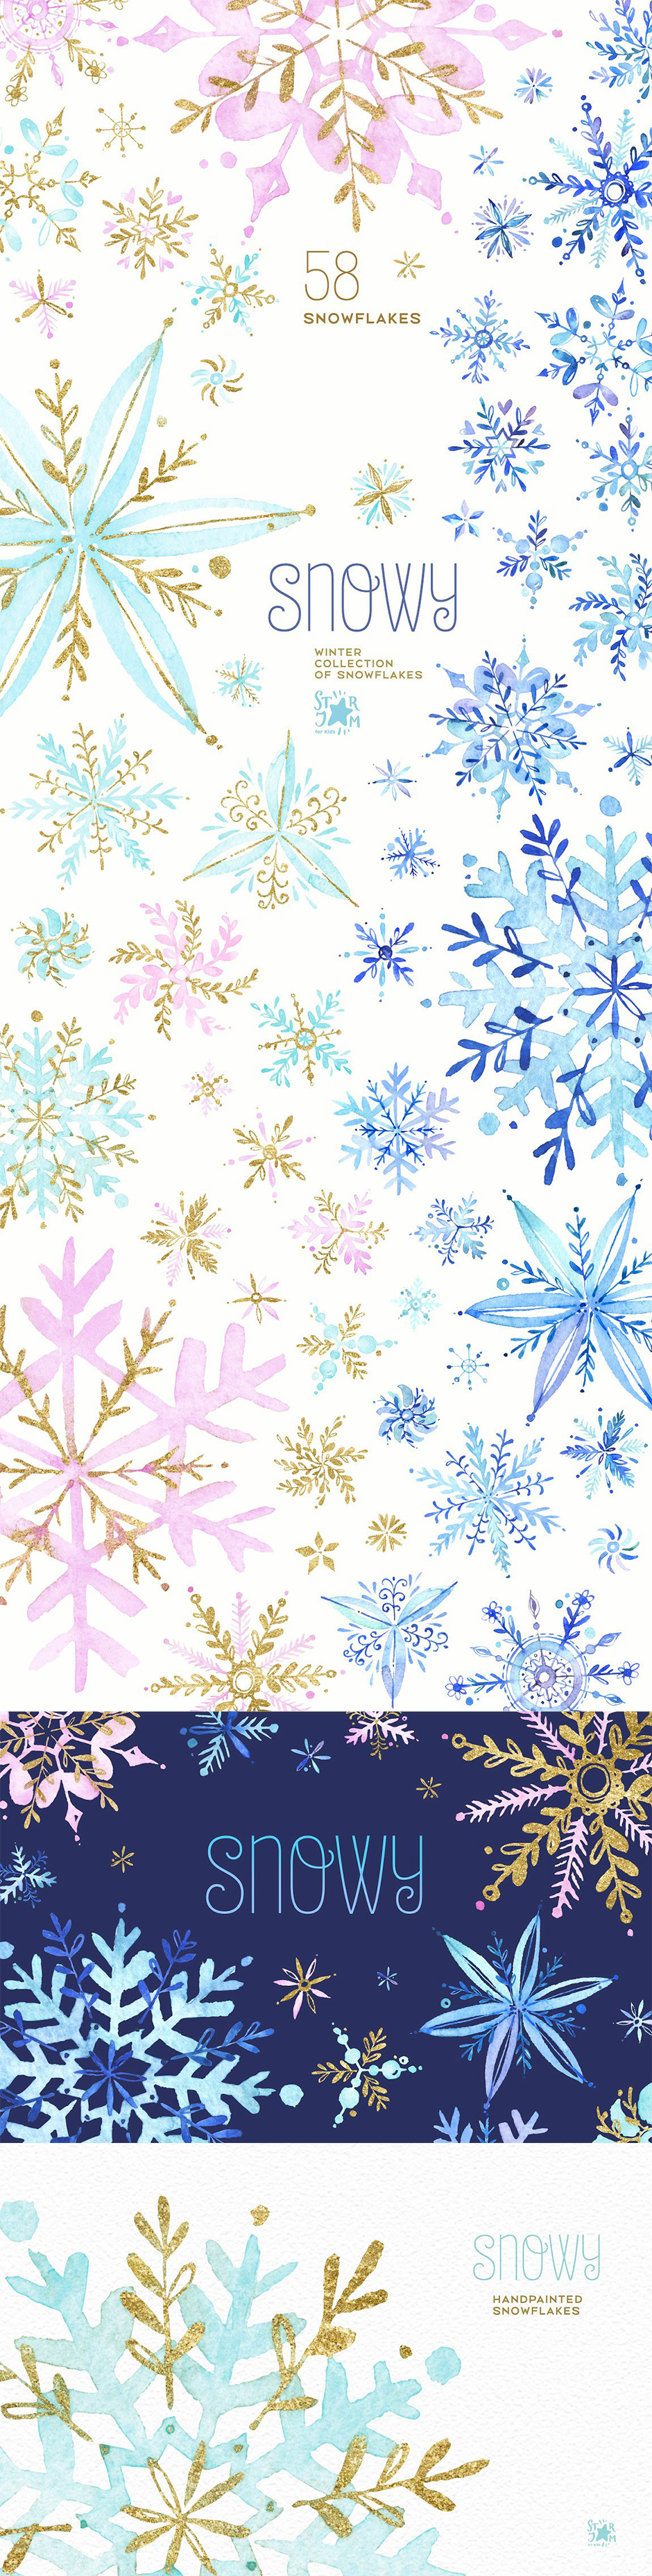 Snowy Holiday Snowflakes